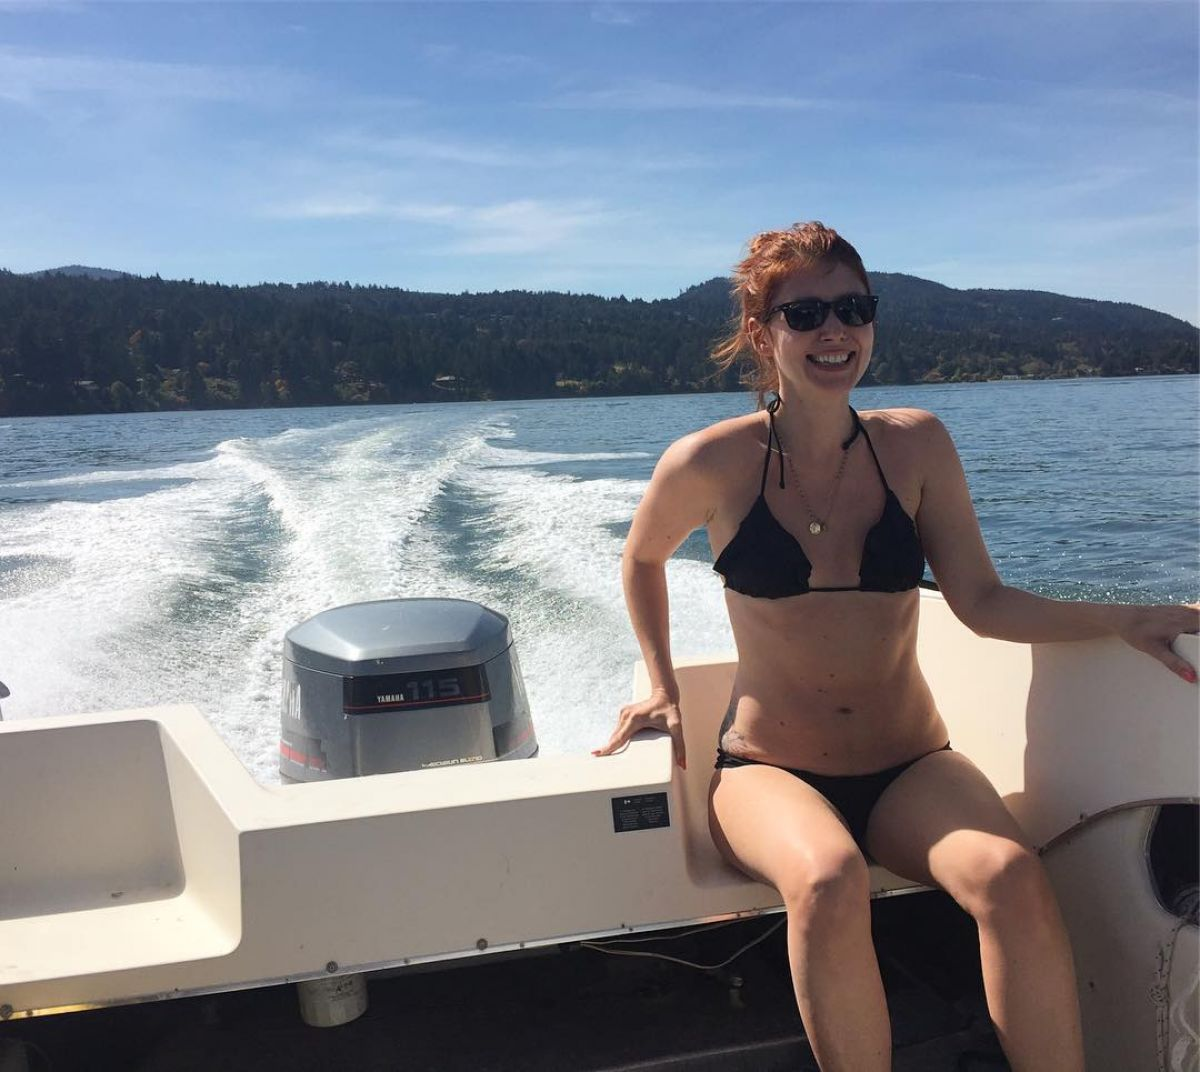 JEWEL STAITE in Bikini at a Boat 08/27/2016 Instagram Picture